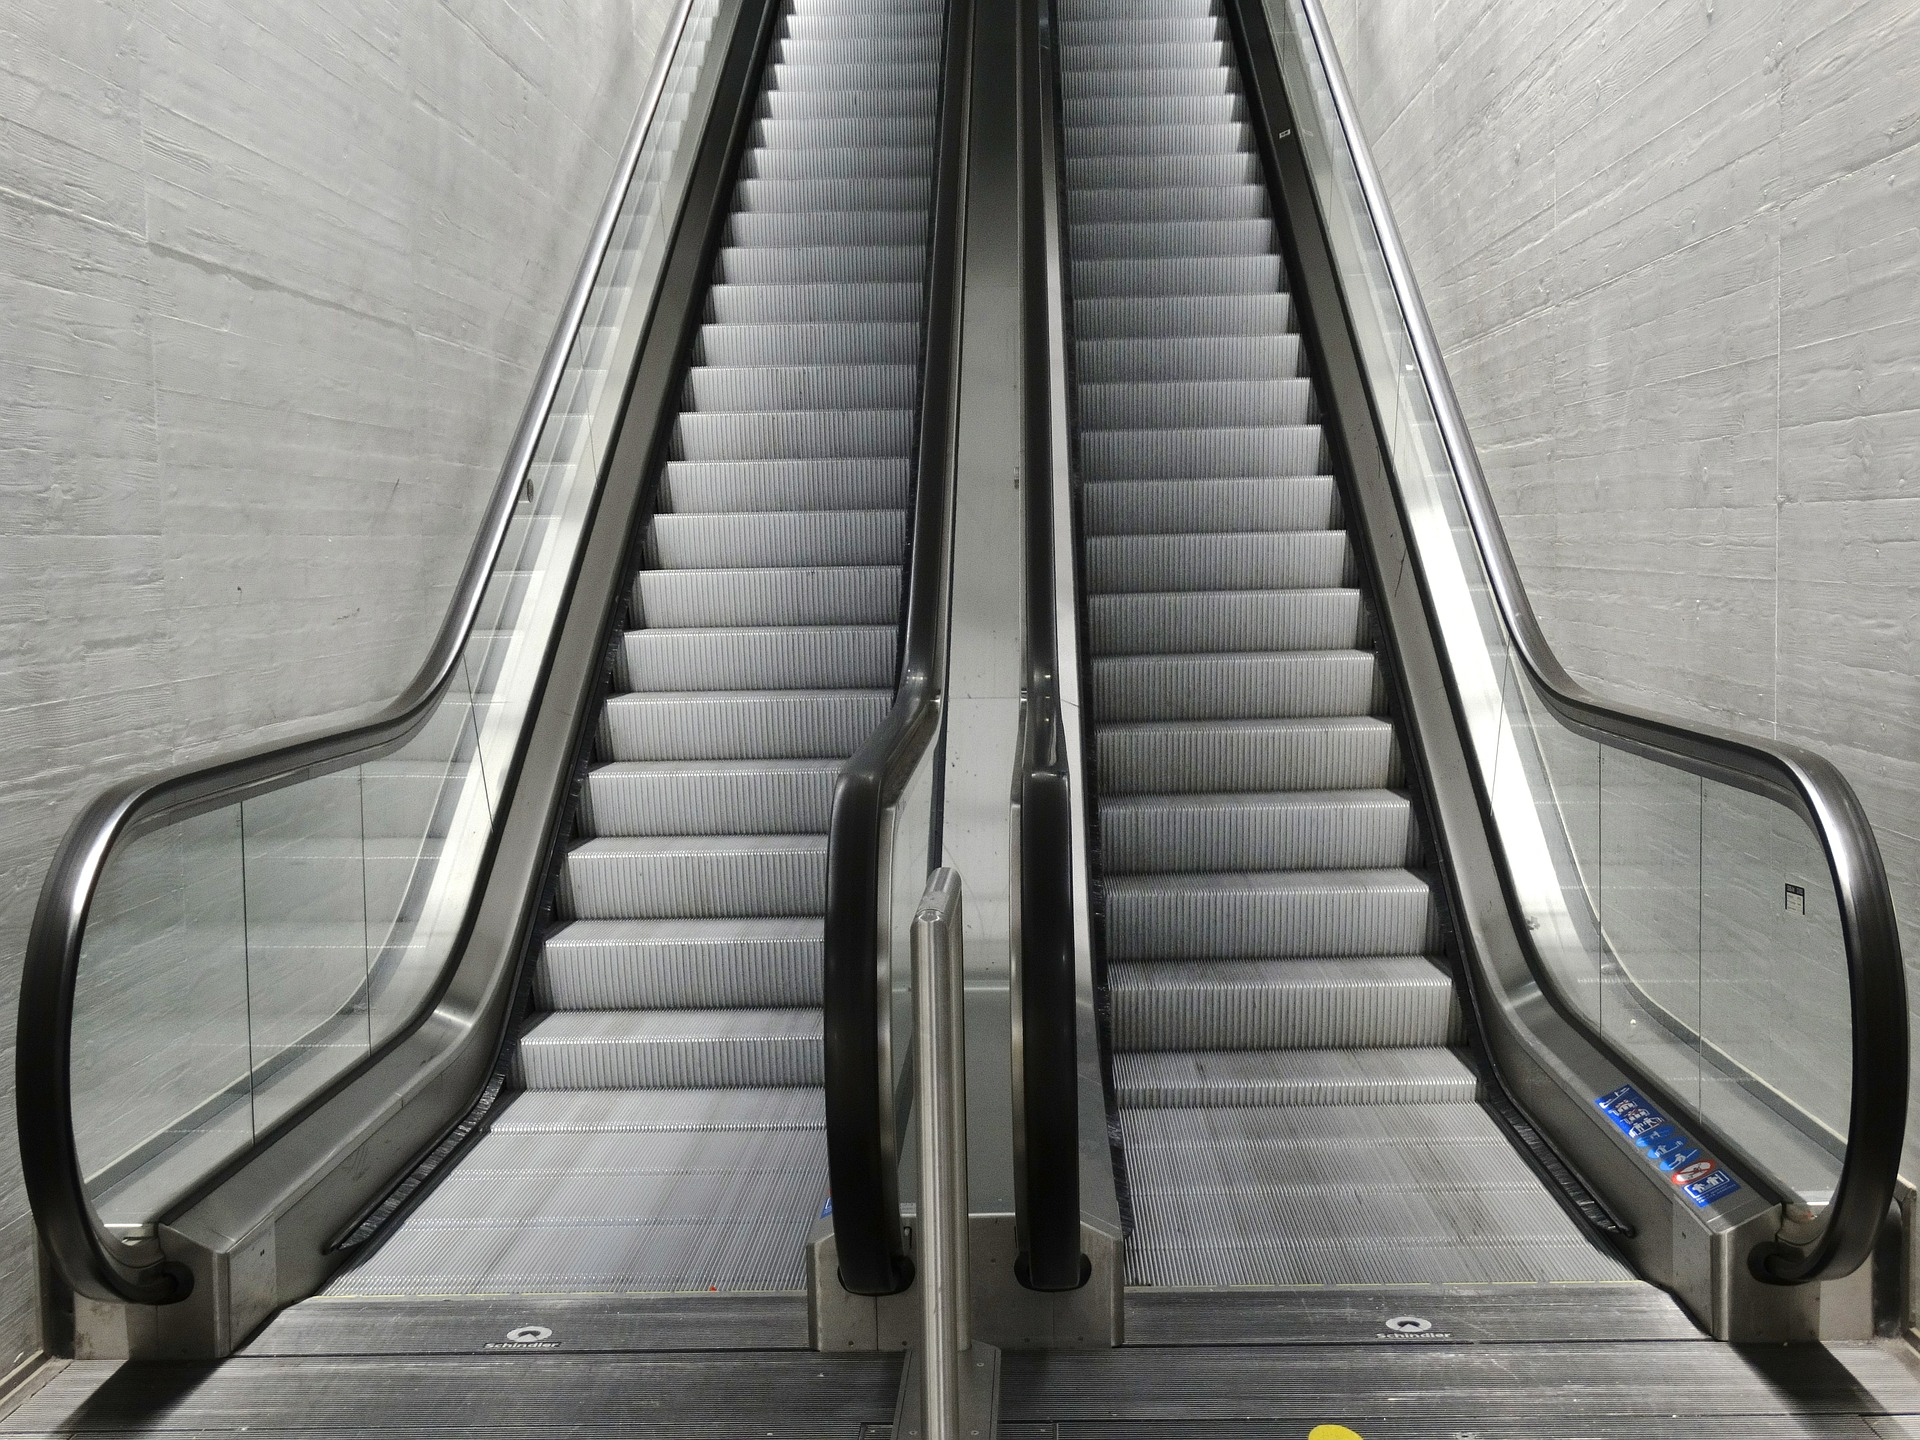 escalator-474197_1920